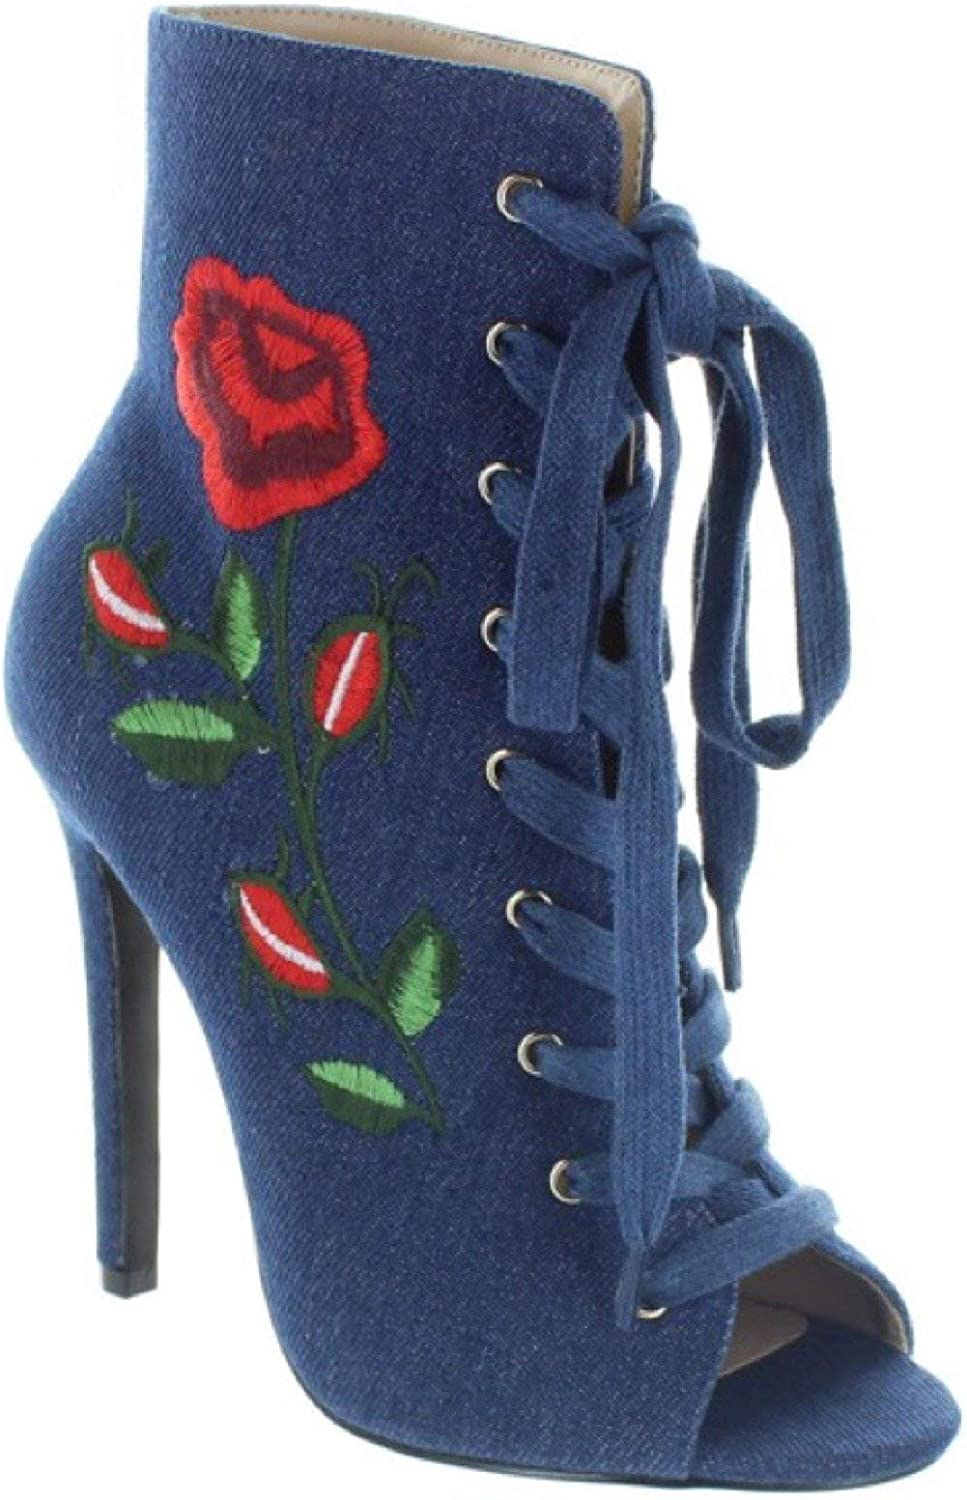 Mona Mia Embroidered Floral pink Lace Up Ankle Boot - Denim bluee